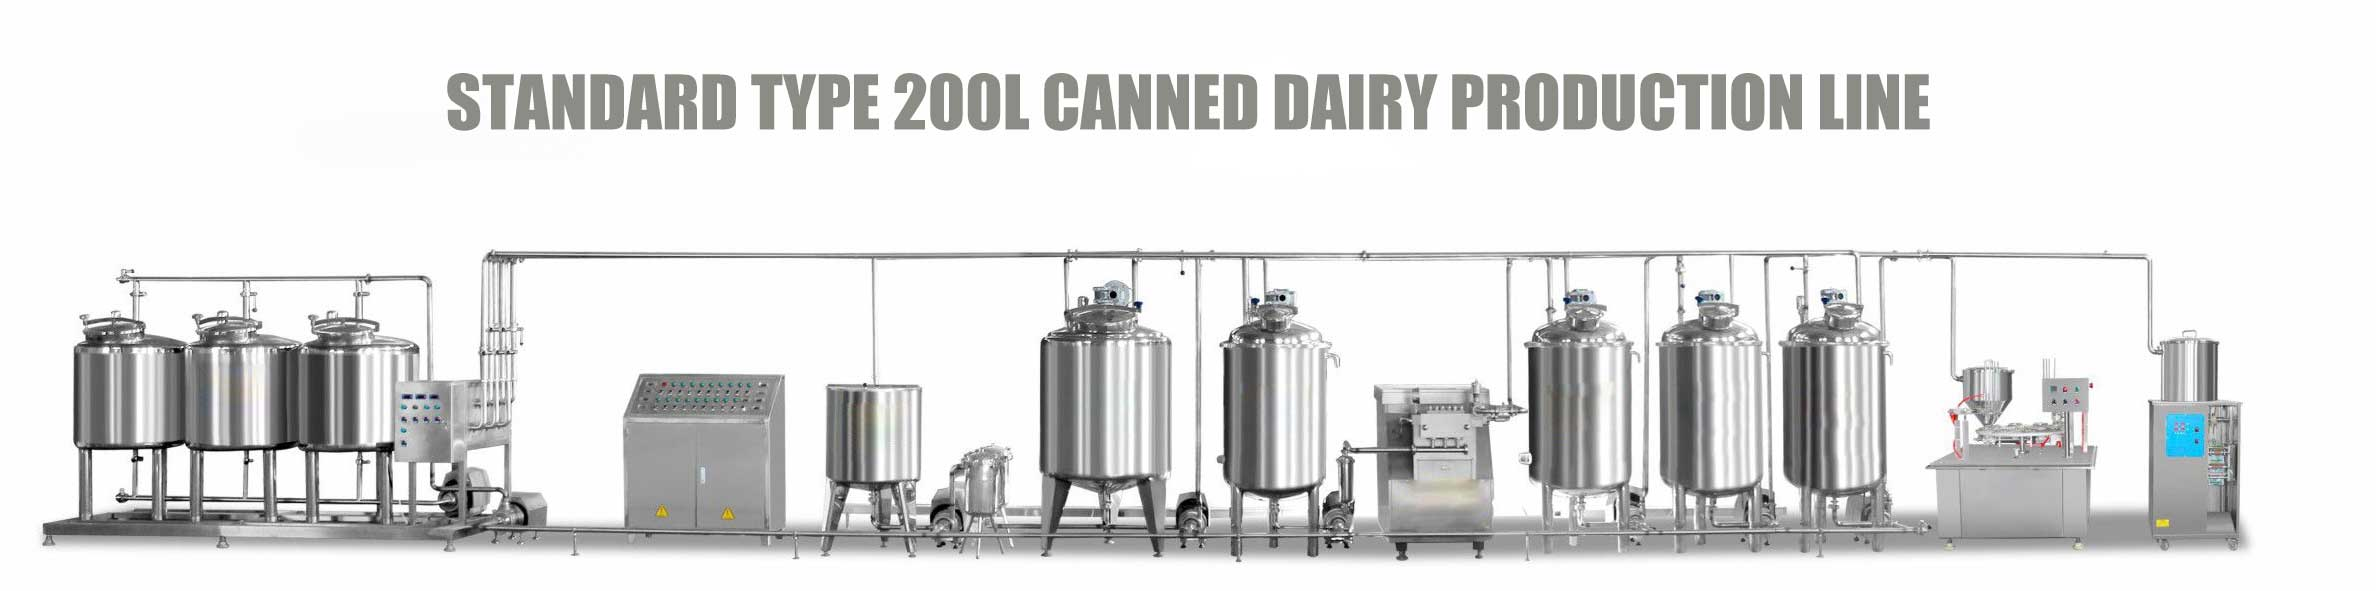 Standard type 200l canned dairy production line